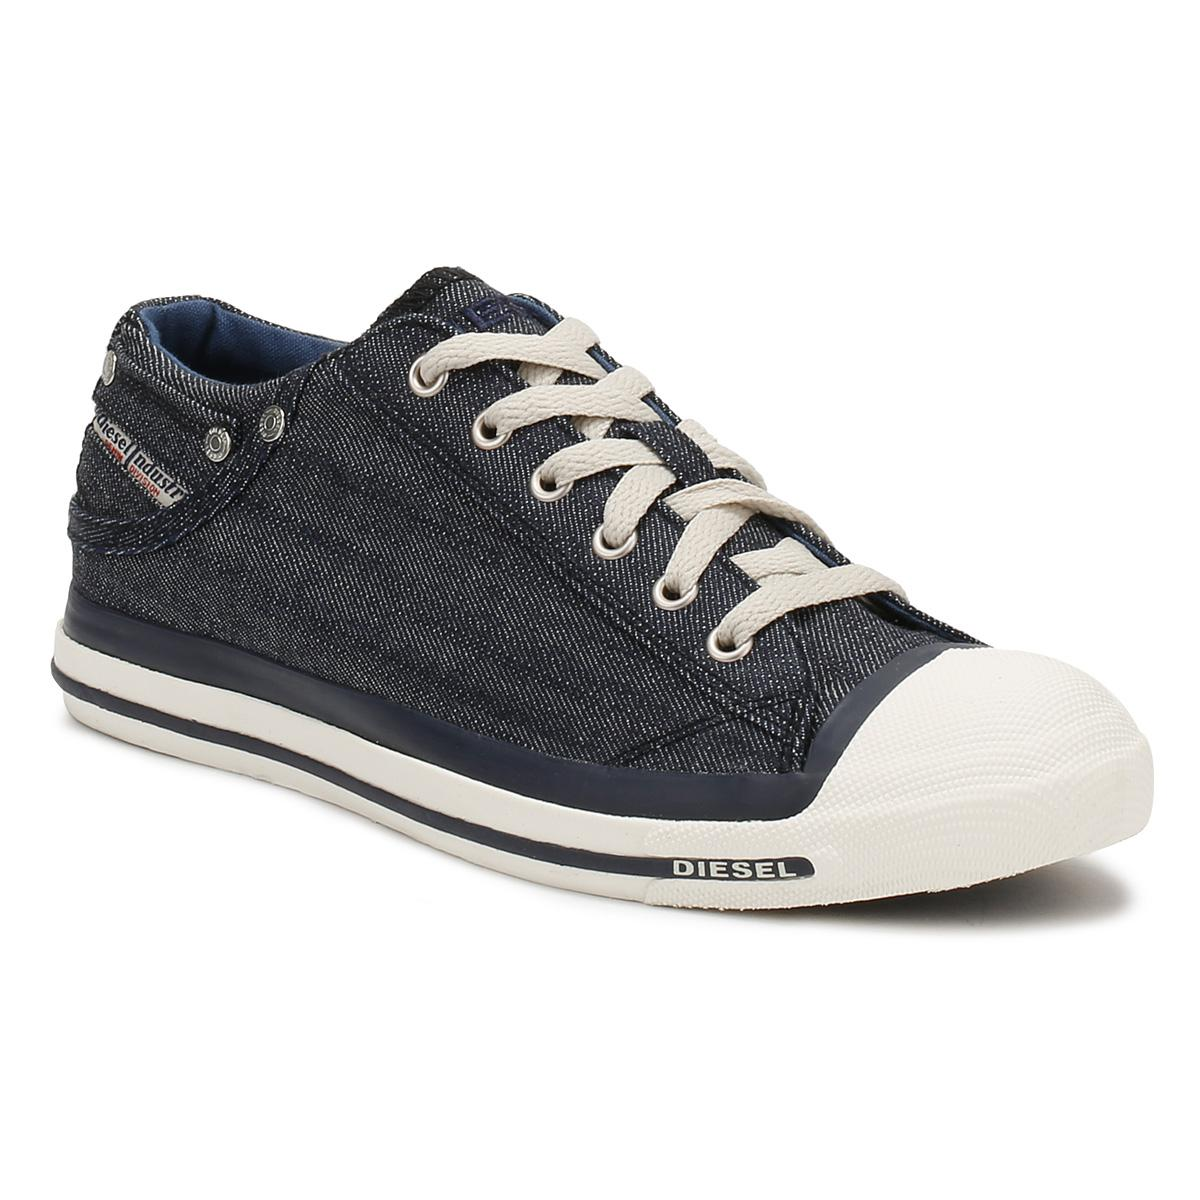 Lyst - DIESEL Mens Indigo Blue   White Denim Exposure Low Trainers ... 38f76dc160e